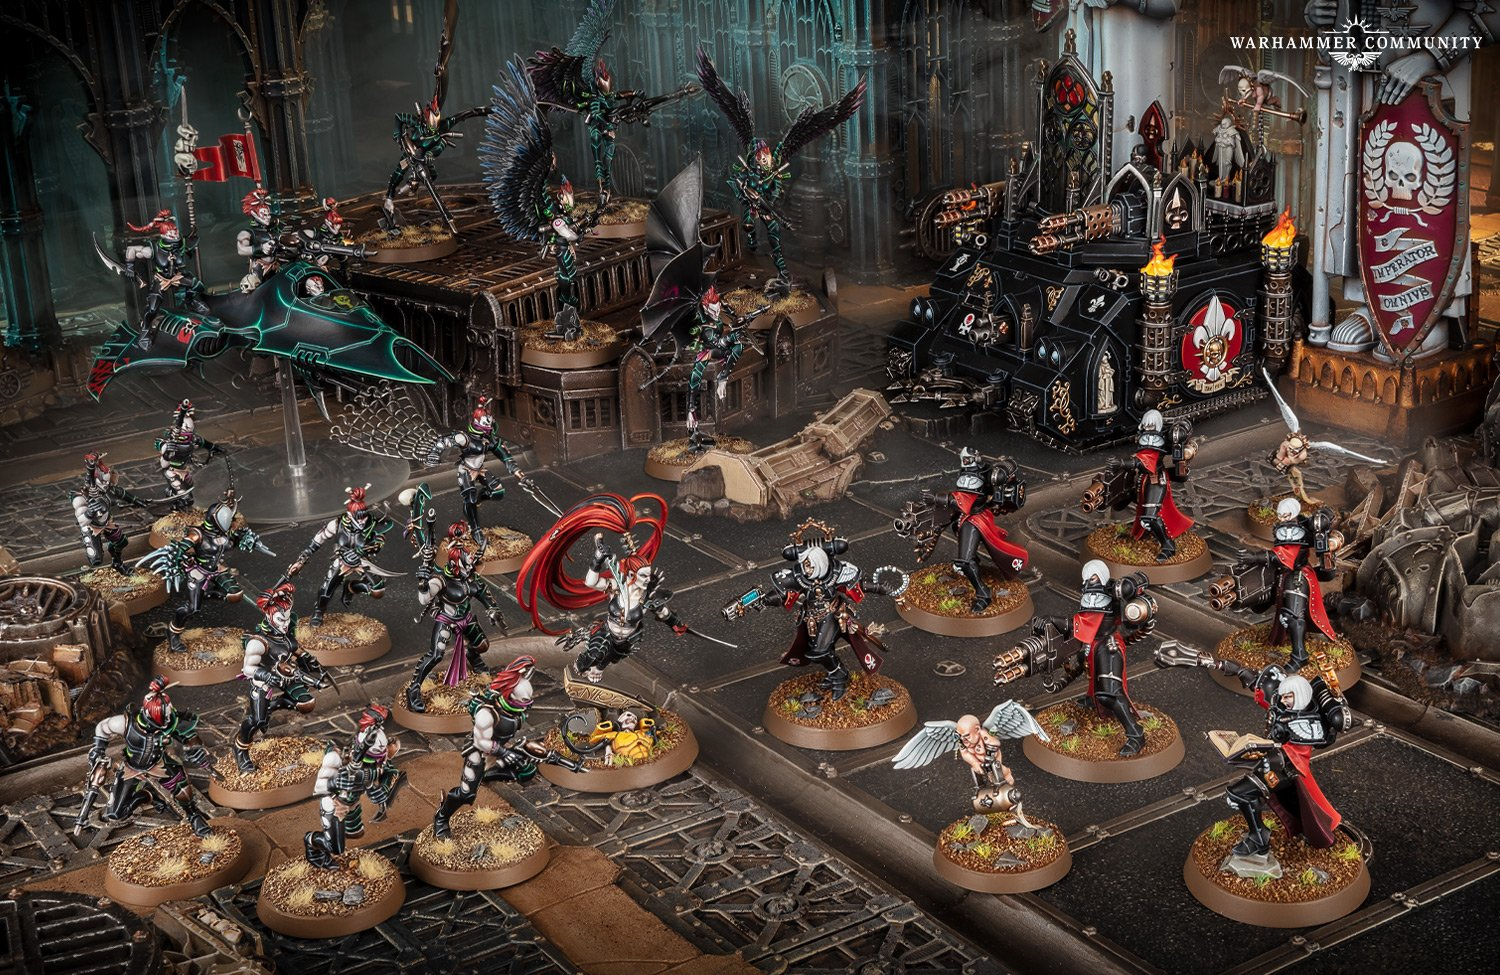 A force of Drukhari (elfin aliens) models fighting against Sisters Of Battle (armoured nuns, backed up by a battle tank).